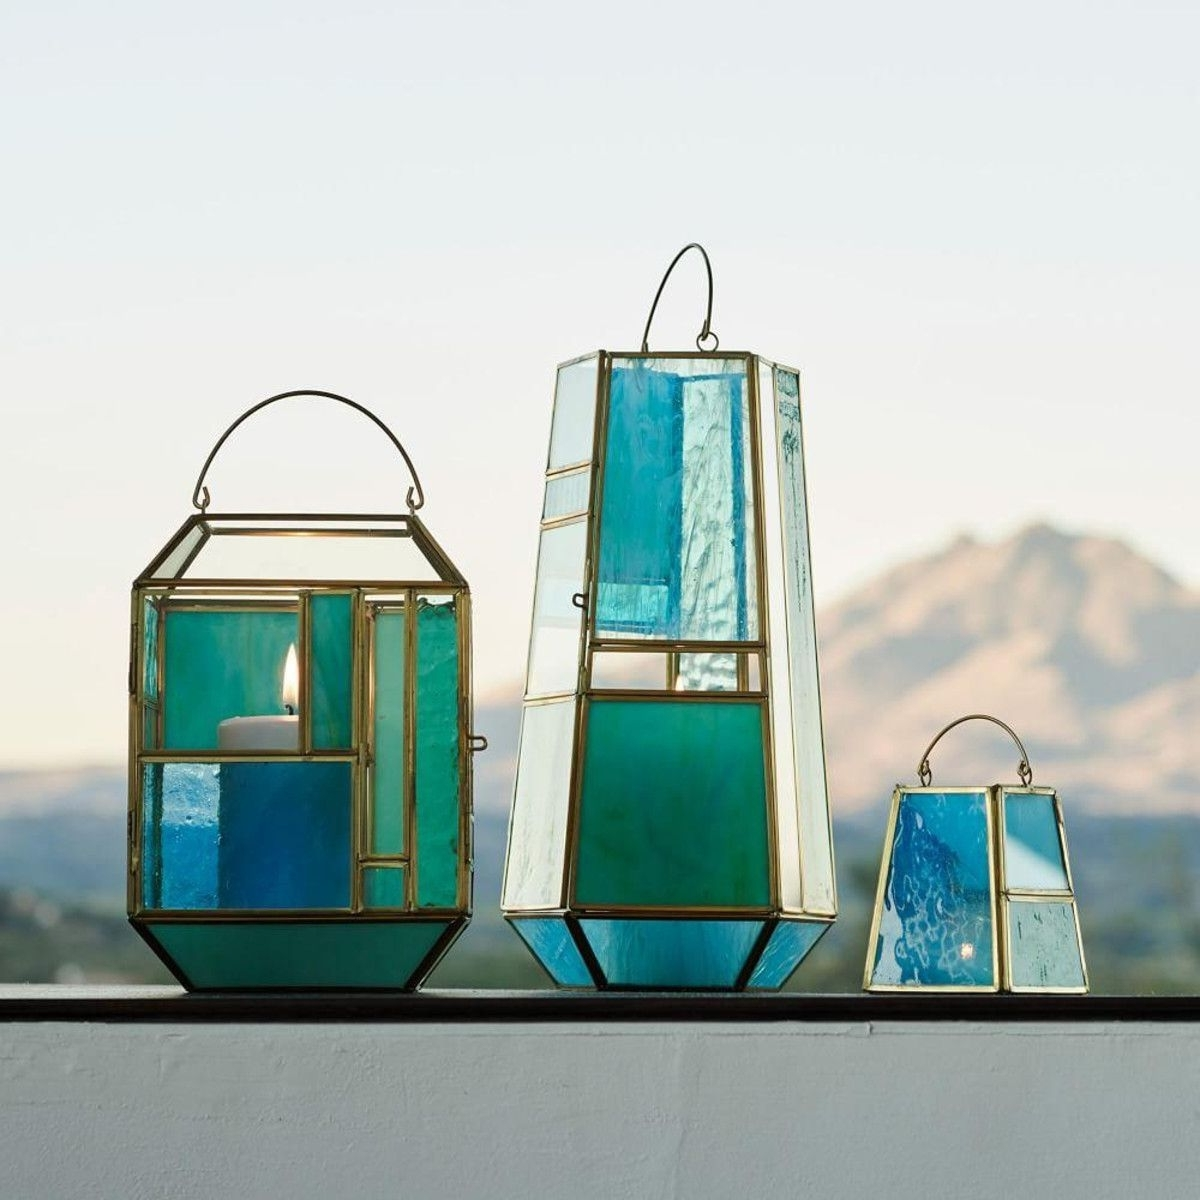 Popular Hang These Stained Glass Inspired Lanterns Inside Or Outside, To In Blue Outdoor Lanterns (View 13 of 20)